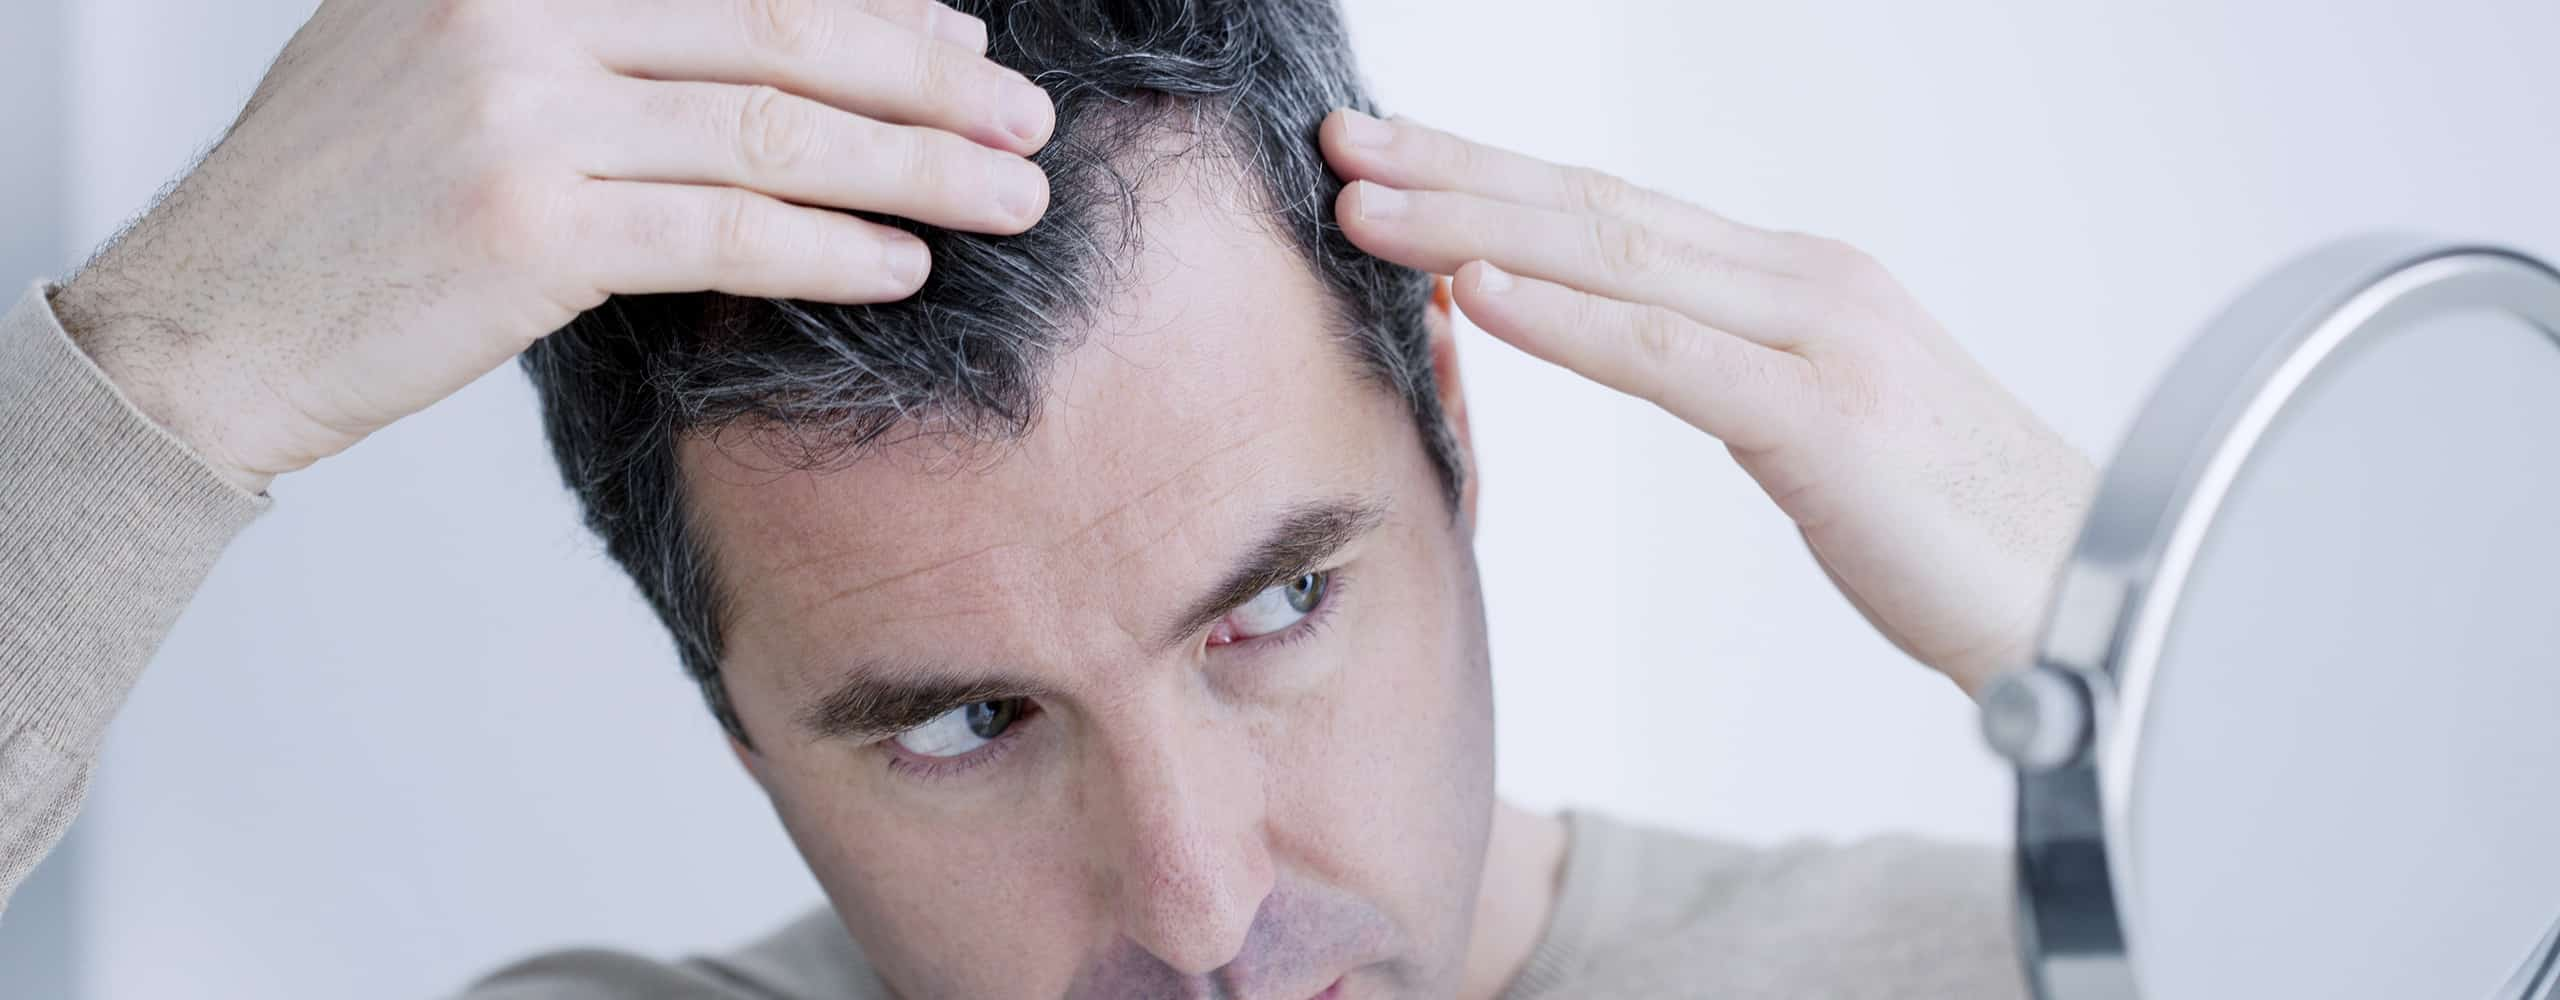 Hair Transplant: 10 Things to Consider Before You Decide